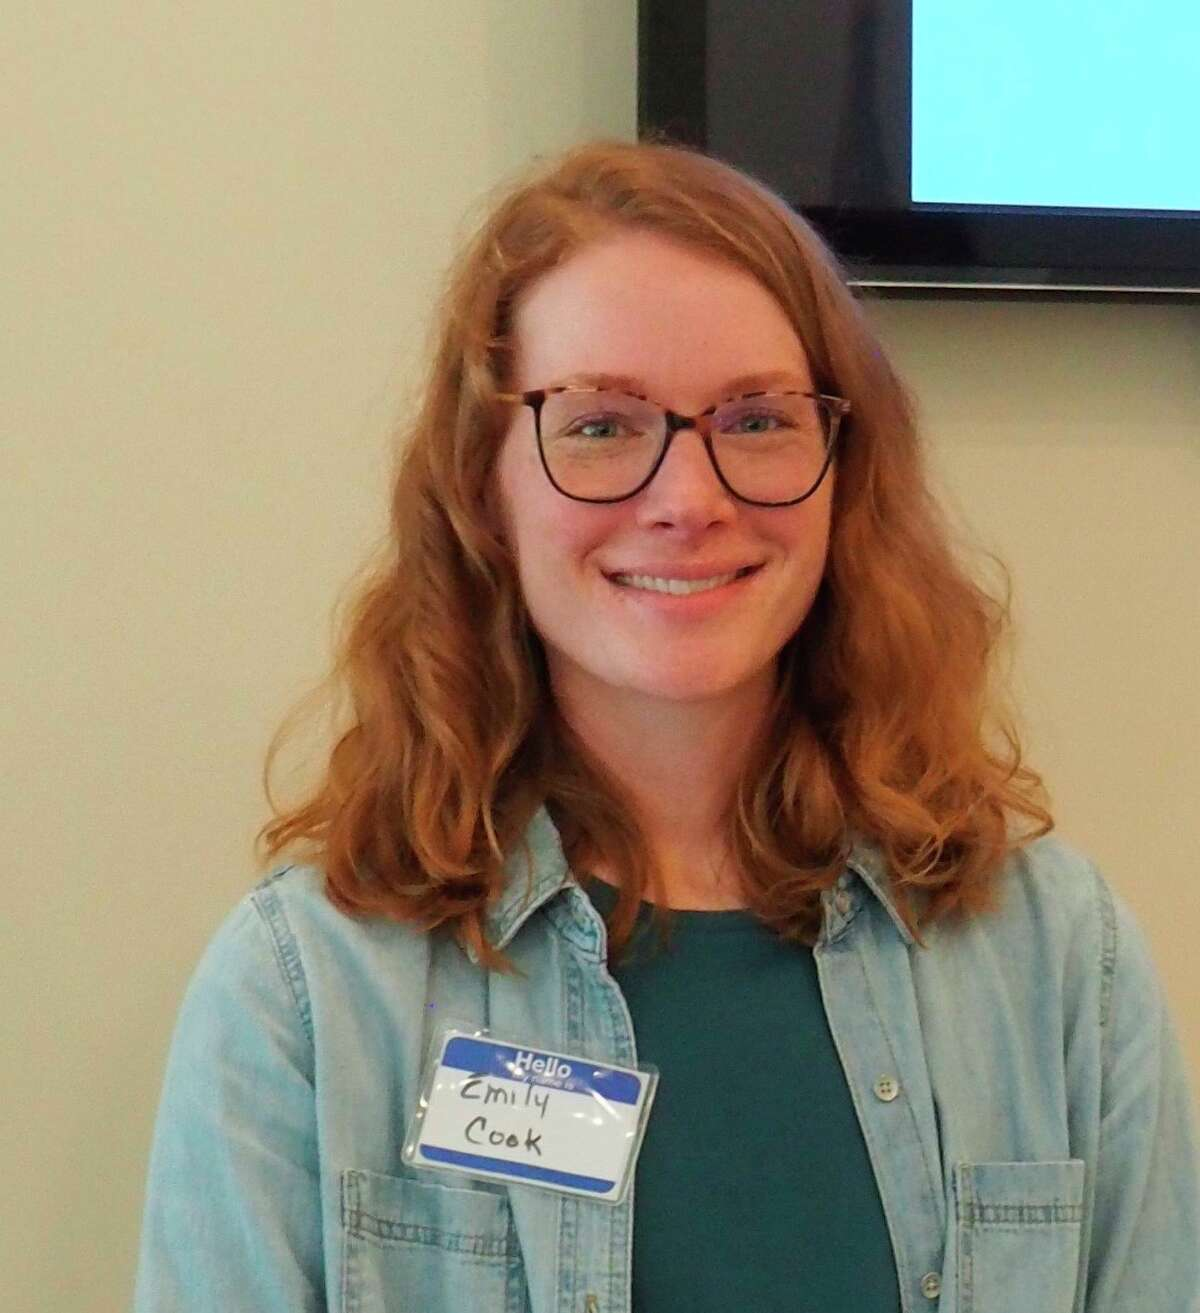 Emily Cook, outreach specialist with Northwest Michigan Invasive Species Network, spoke to the Spirt of the Woods Club Garden Club on July 12 in Manistee.